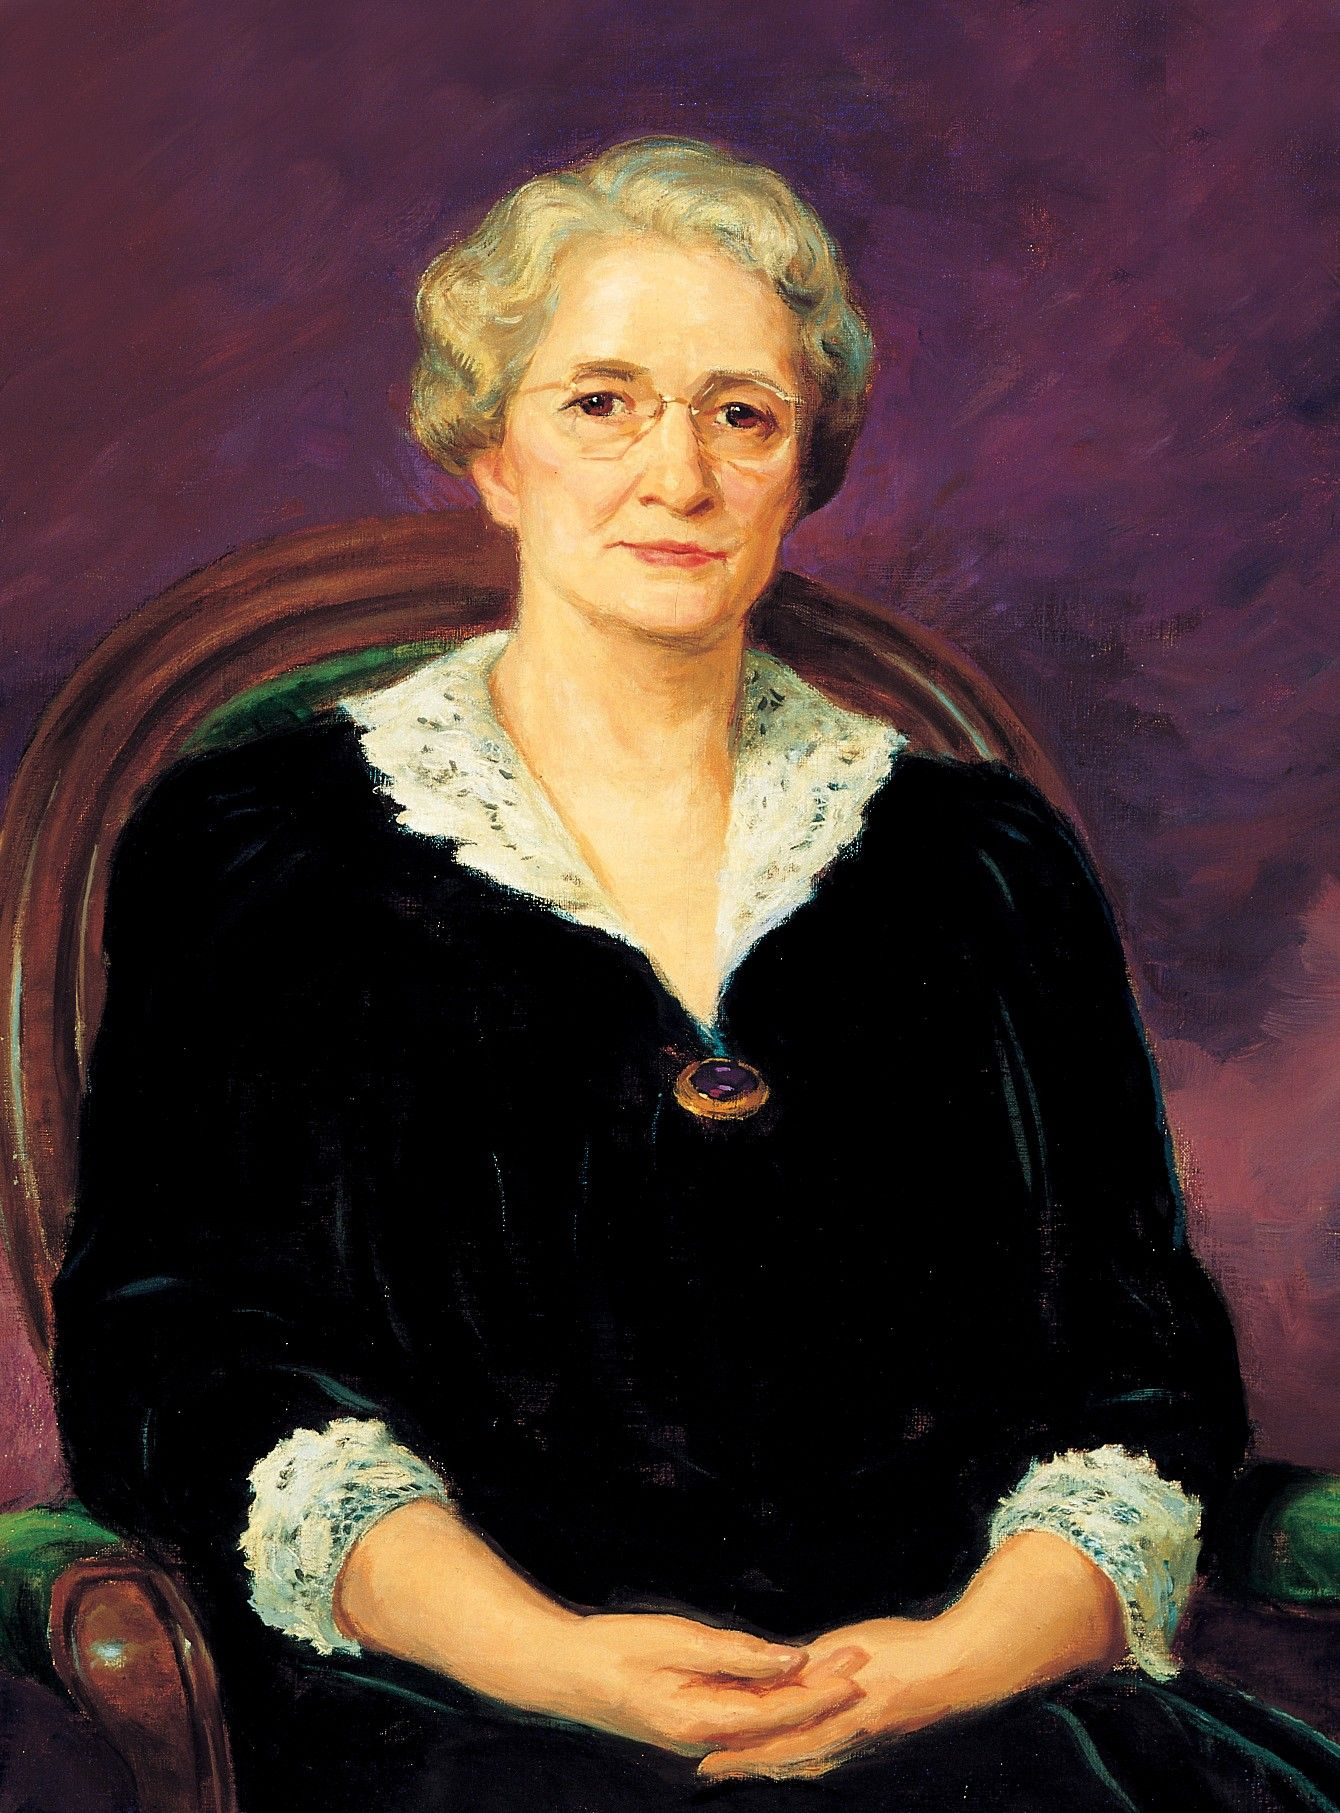 A portrait of Amy Brown Lyman, who served as the eighth general president of the Relief Society from 1940 to 1945; painted by Lee Greene Richards.